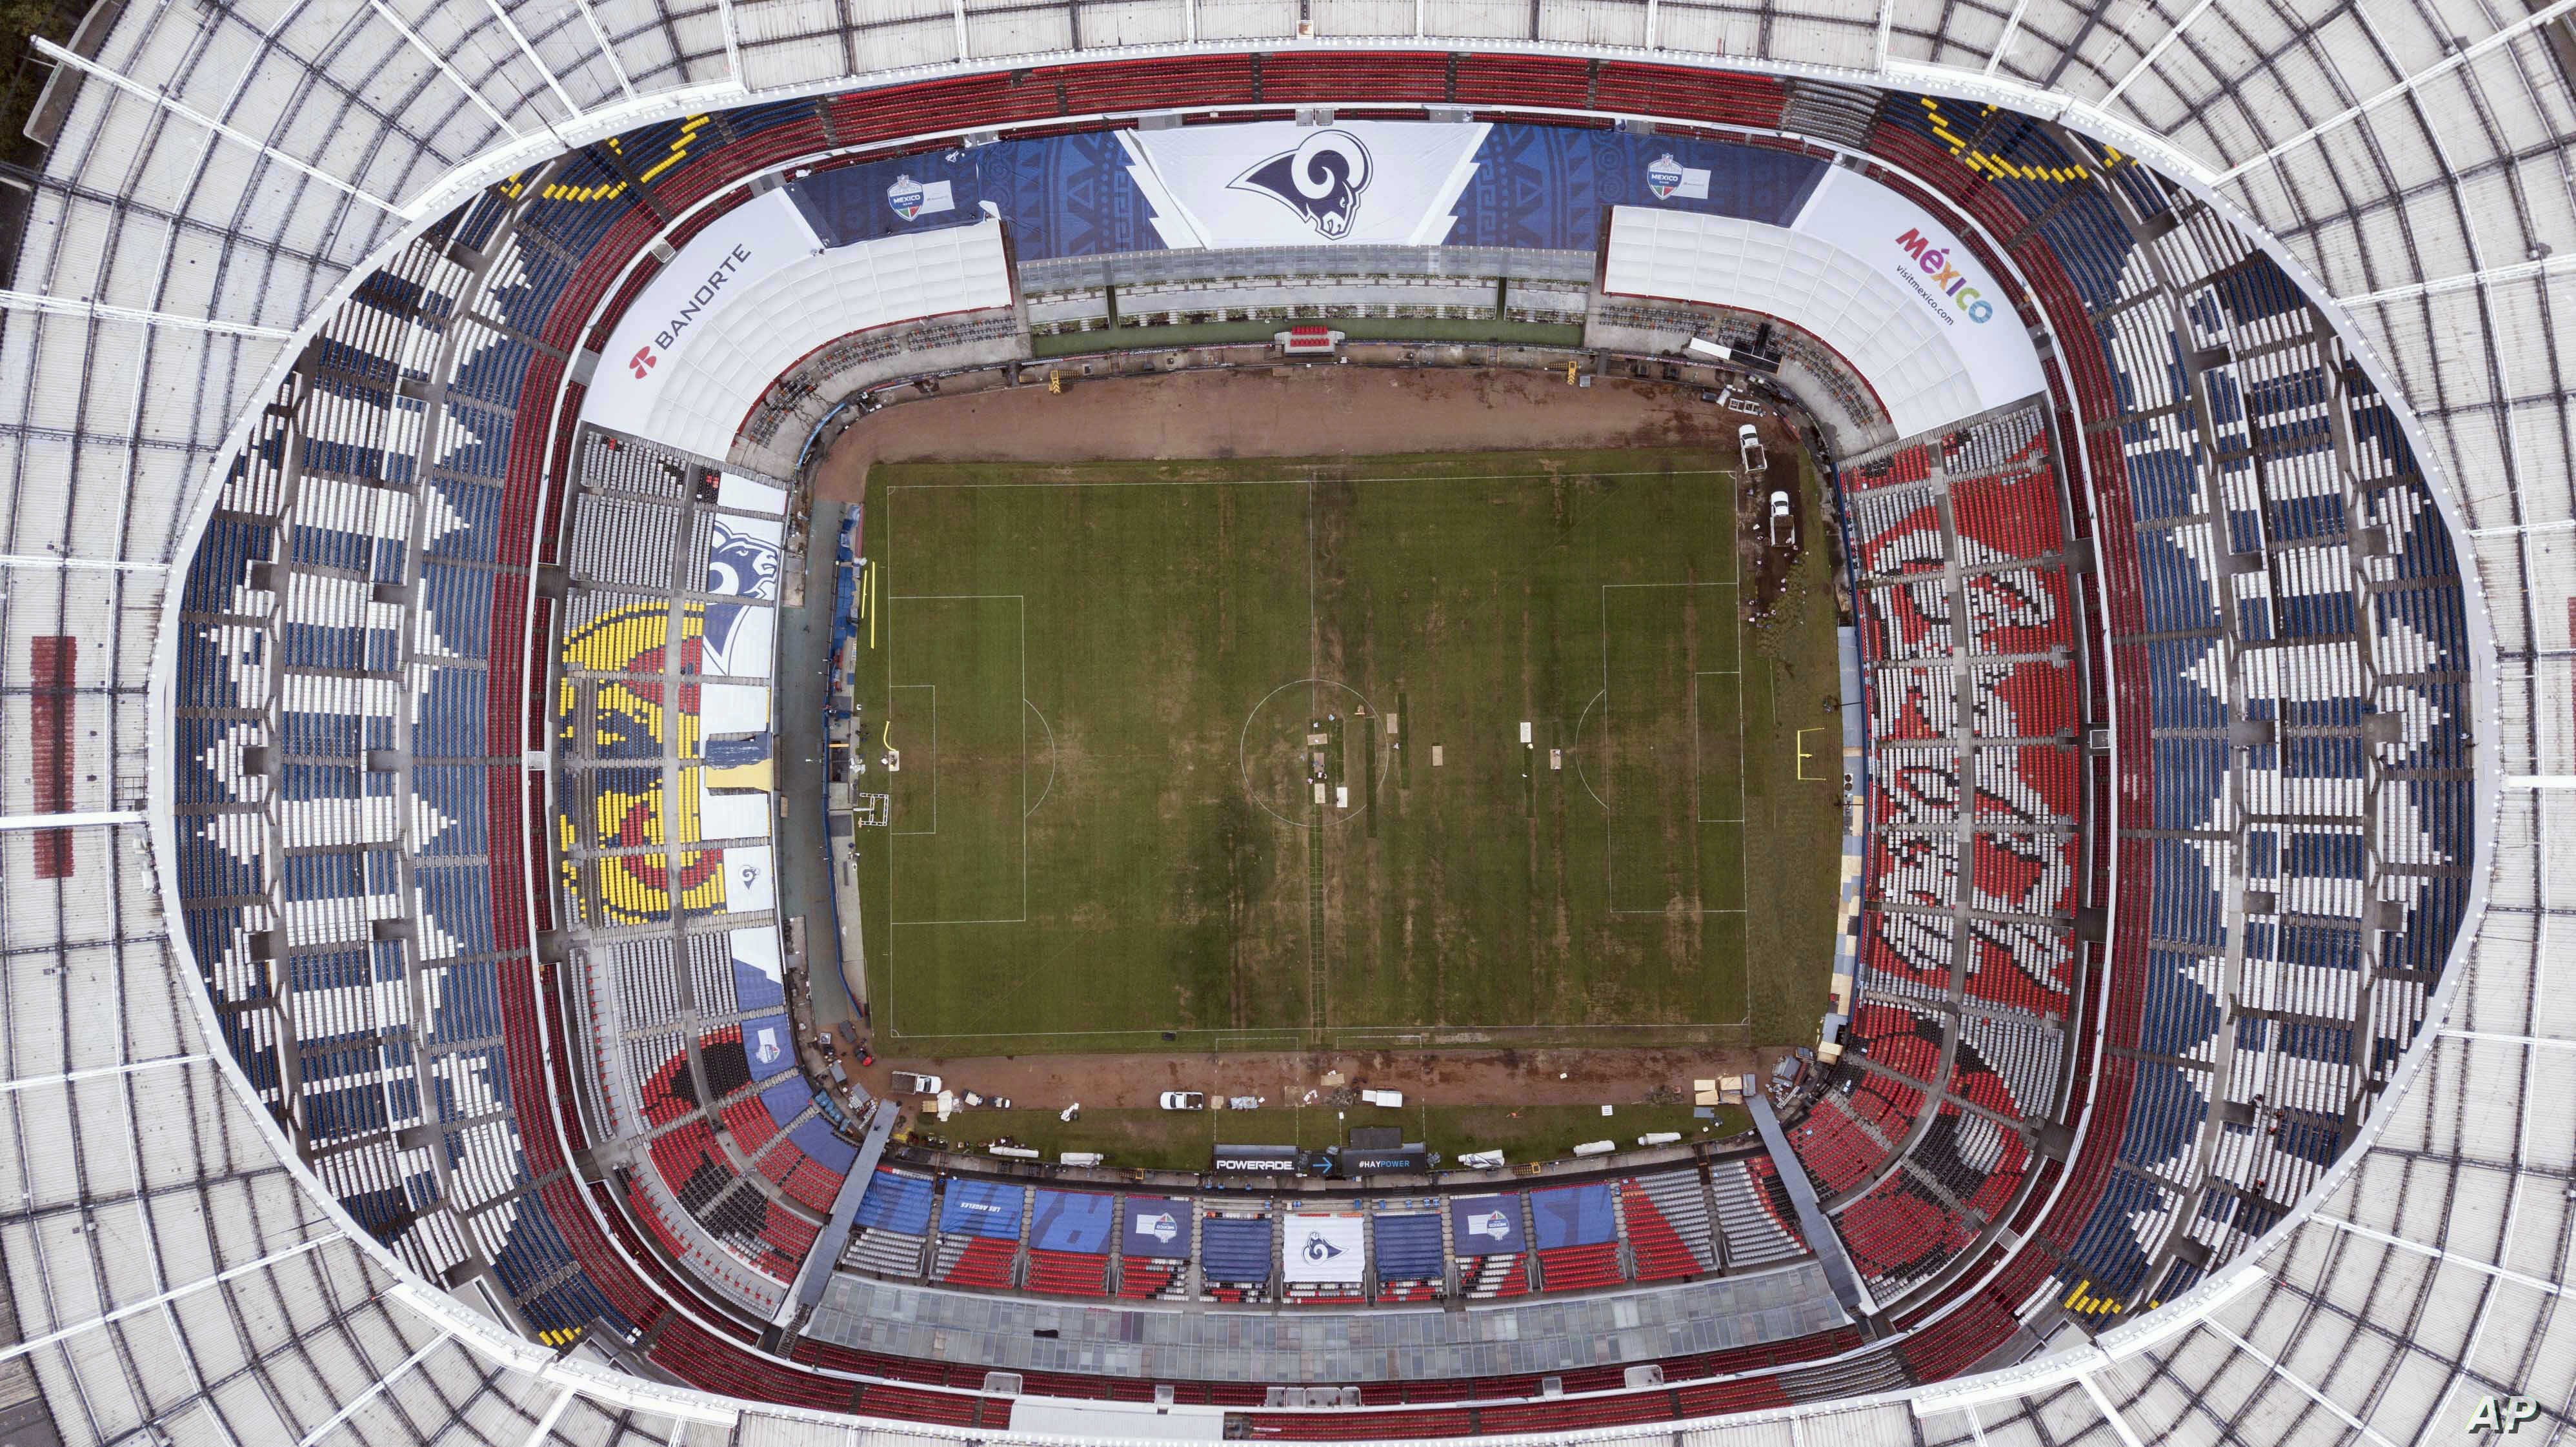 Mexico's Azteca Stadium is seen from above in Mexico City, Nov. 13, 2018. The NFL has moved the Los Angeles Rams' Monday night showdown with the Kansas City Chiefs from Mexico City to Los Angeles due to the poor condition of the field at Azteca Stadi...